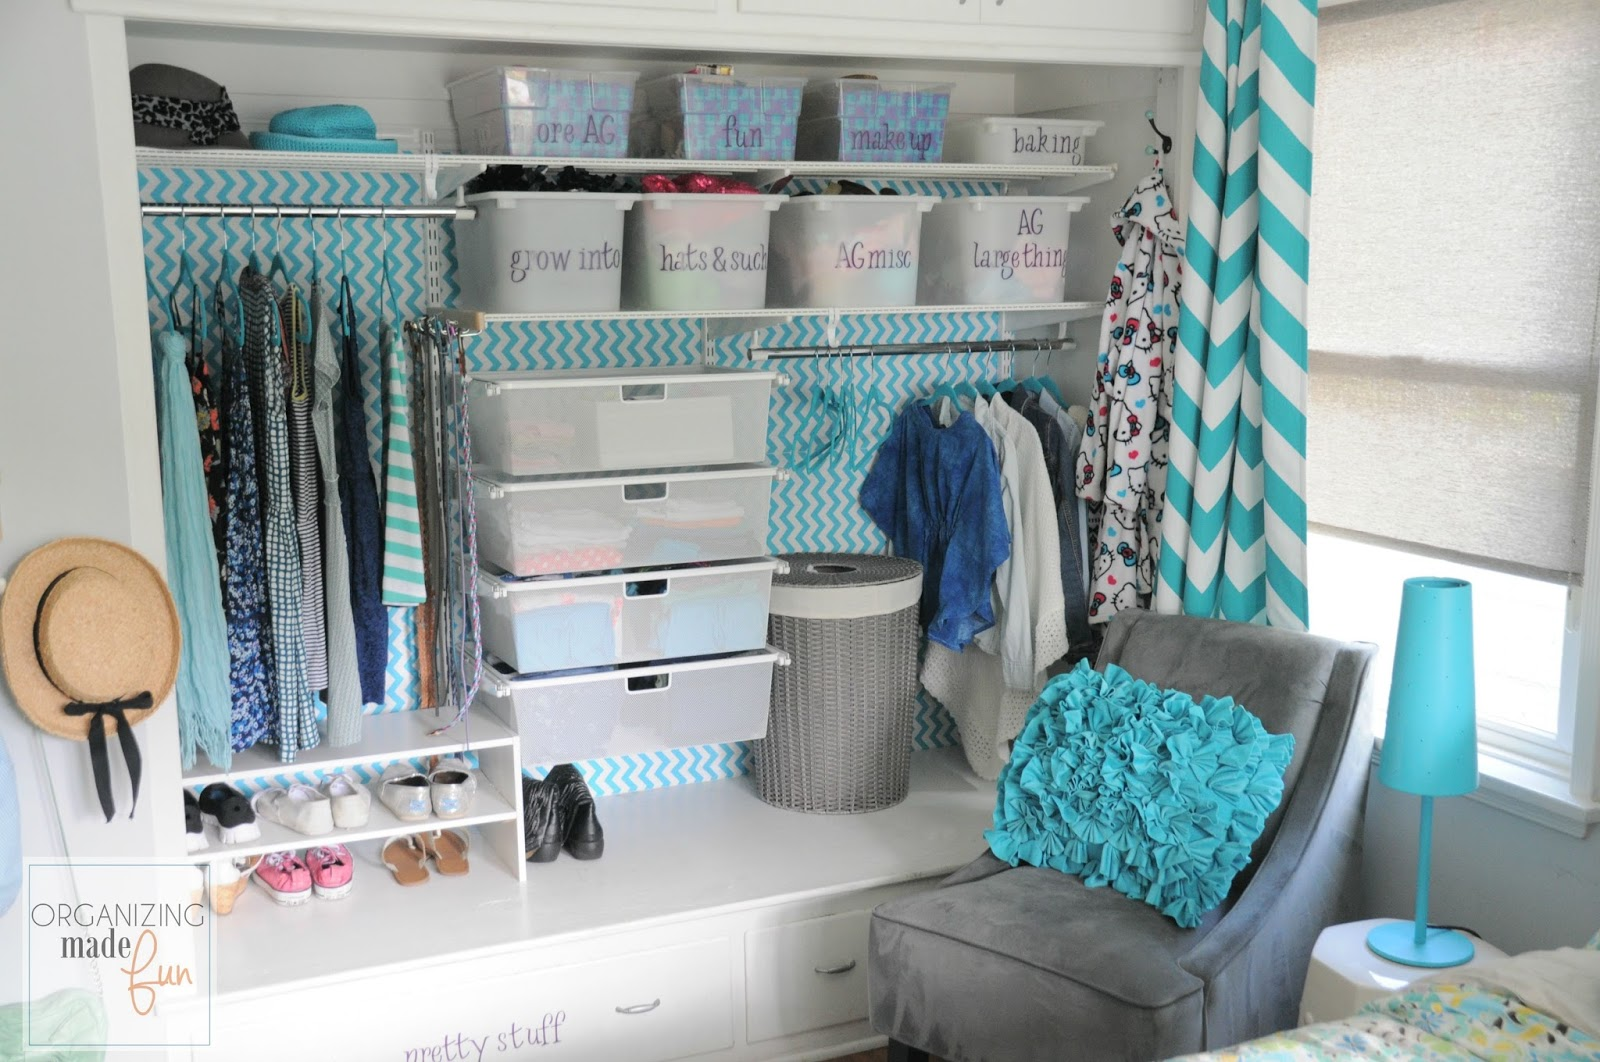 Cute Closet Organization Ideas Part - 40: Tween Girlu0027s Turquoise Organized Closet :: OrganizingMadeFun.com